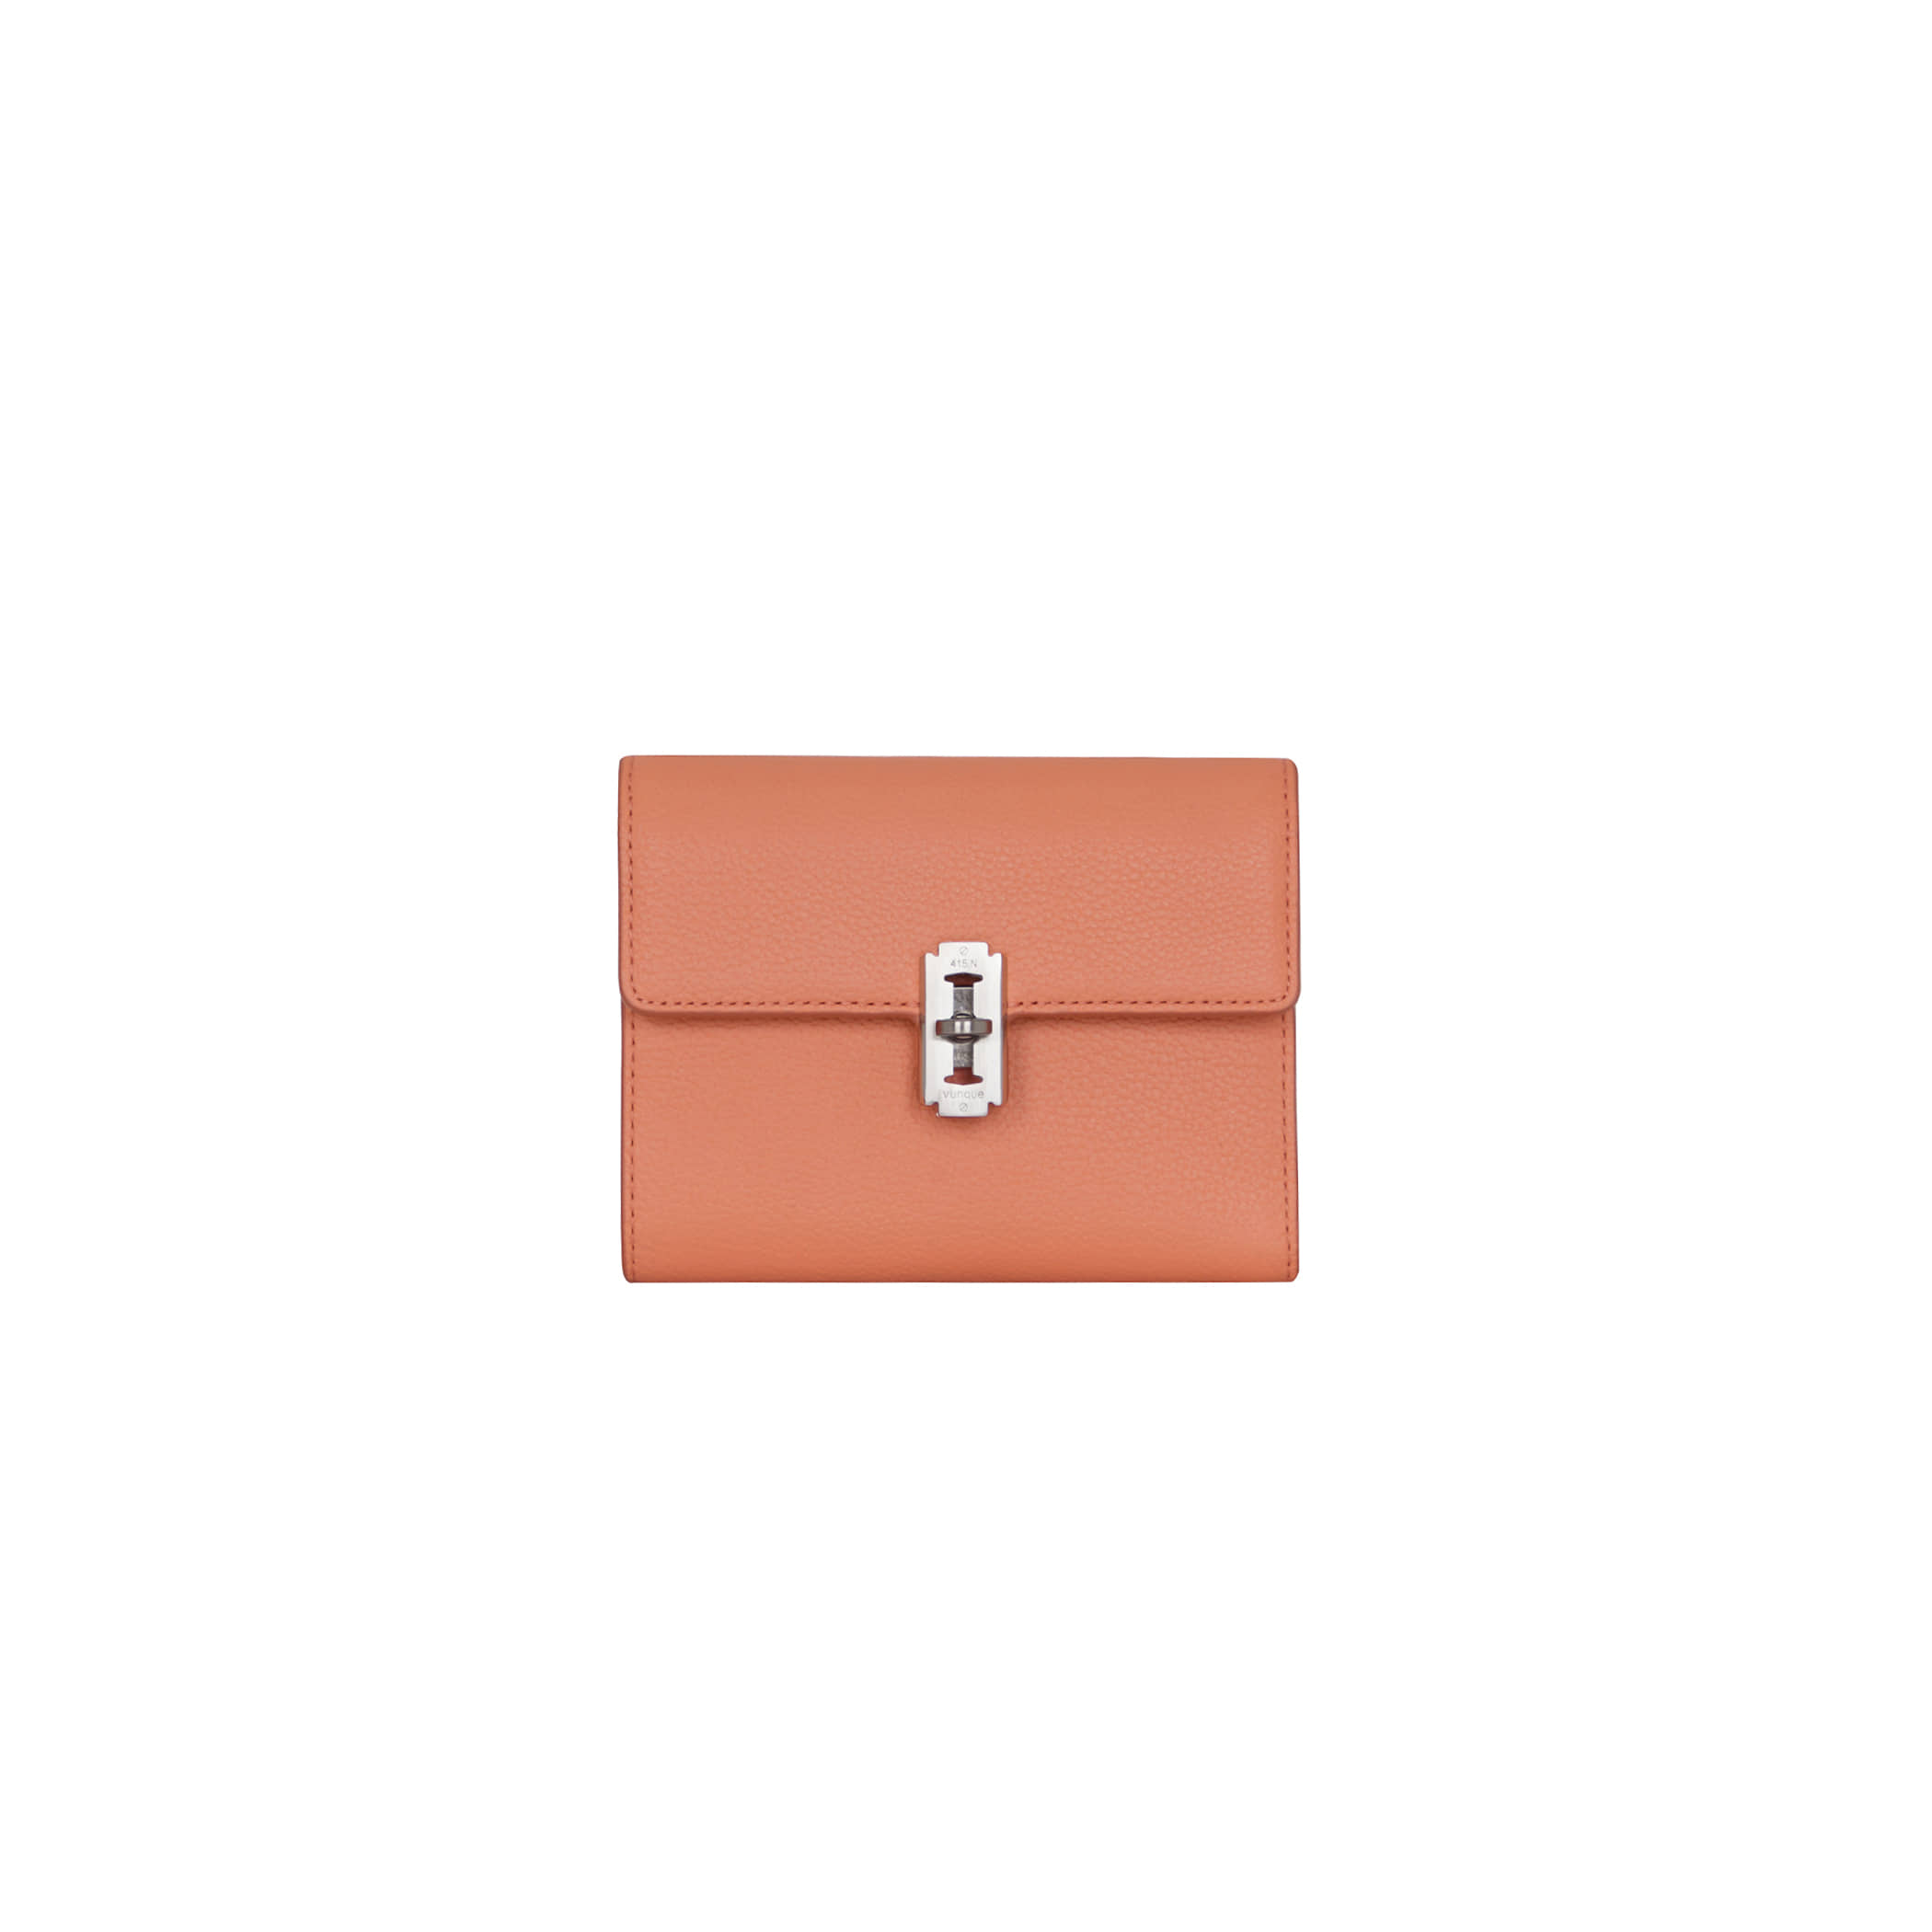 Perfec folded middle wallet (퍼펙 3단 중지갑) Coral